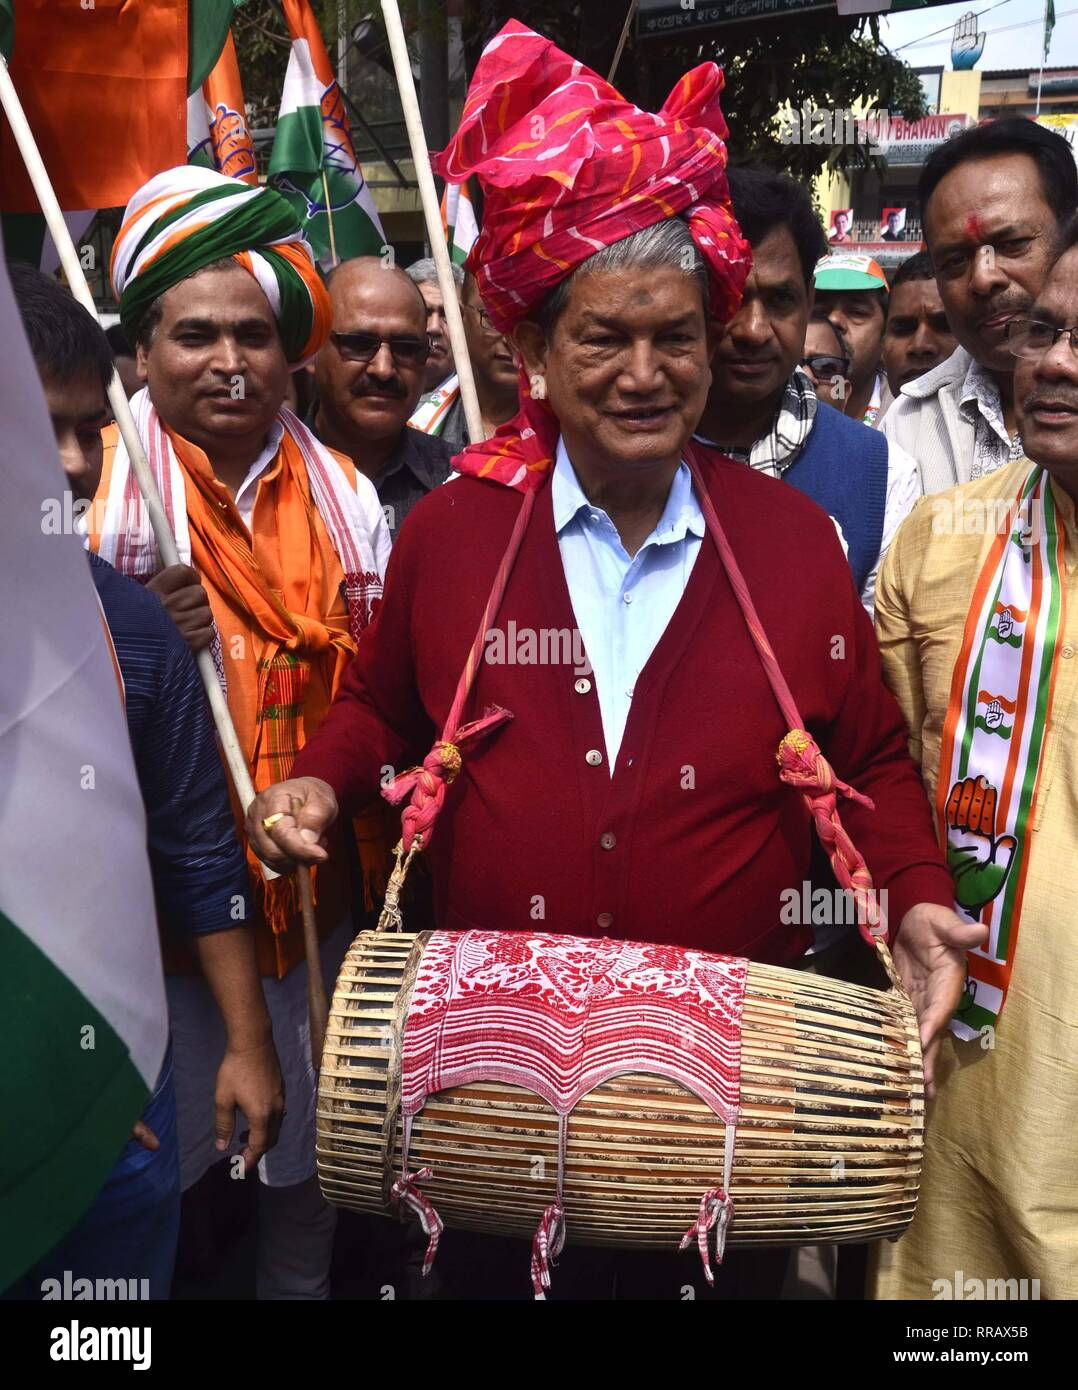 Guwahati, Assam, India. 25th Feb, 2019. Congress General Secretary Harish Rawat beating a Assamese Traditional Dhol(Drum) during flagged off Prachar Yatra for publicity of Congress President Rahul Gandhi's Rally in Guwahati on Monday, 25 February 2019. Credit: Hafiz Ahmed/Alamy Live News Stock Photo